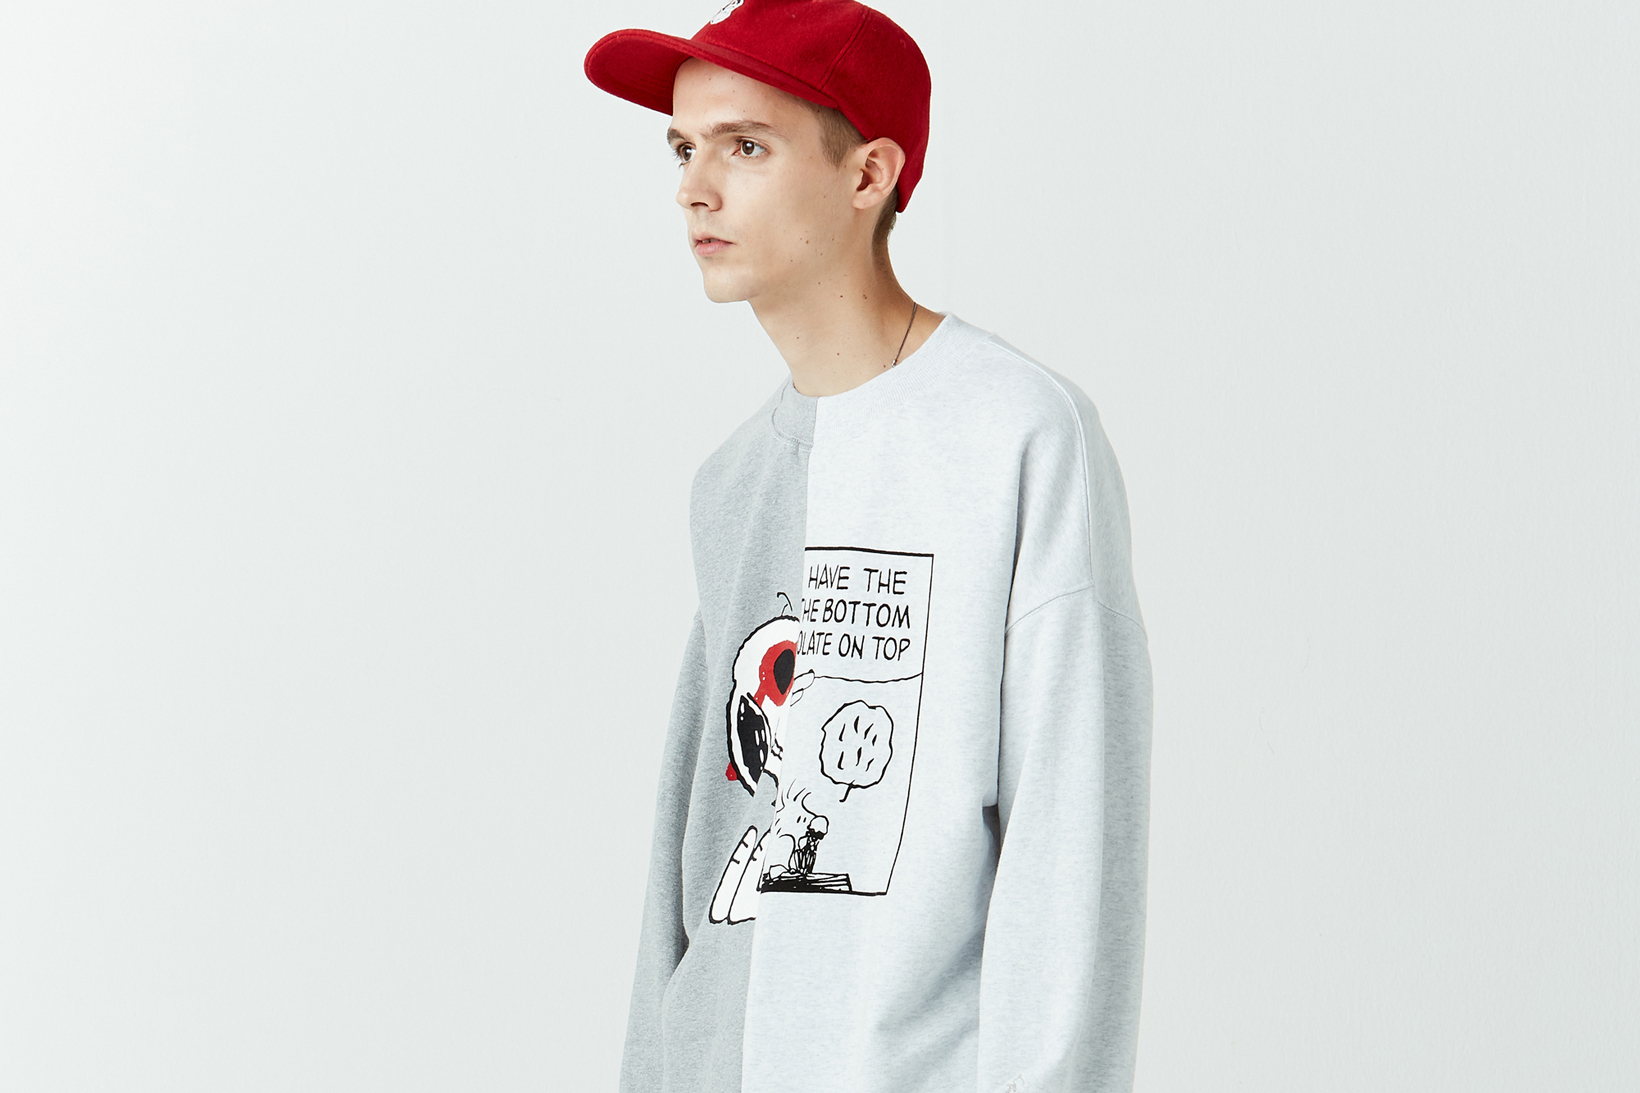 LIFUL x Peanuts Present a Whimsical 2016 Fall/Winter Capsule Collection